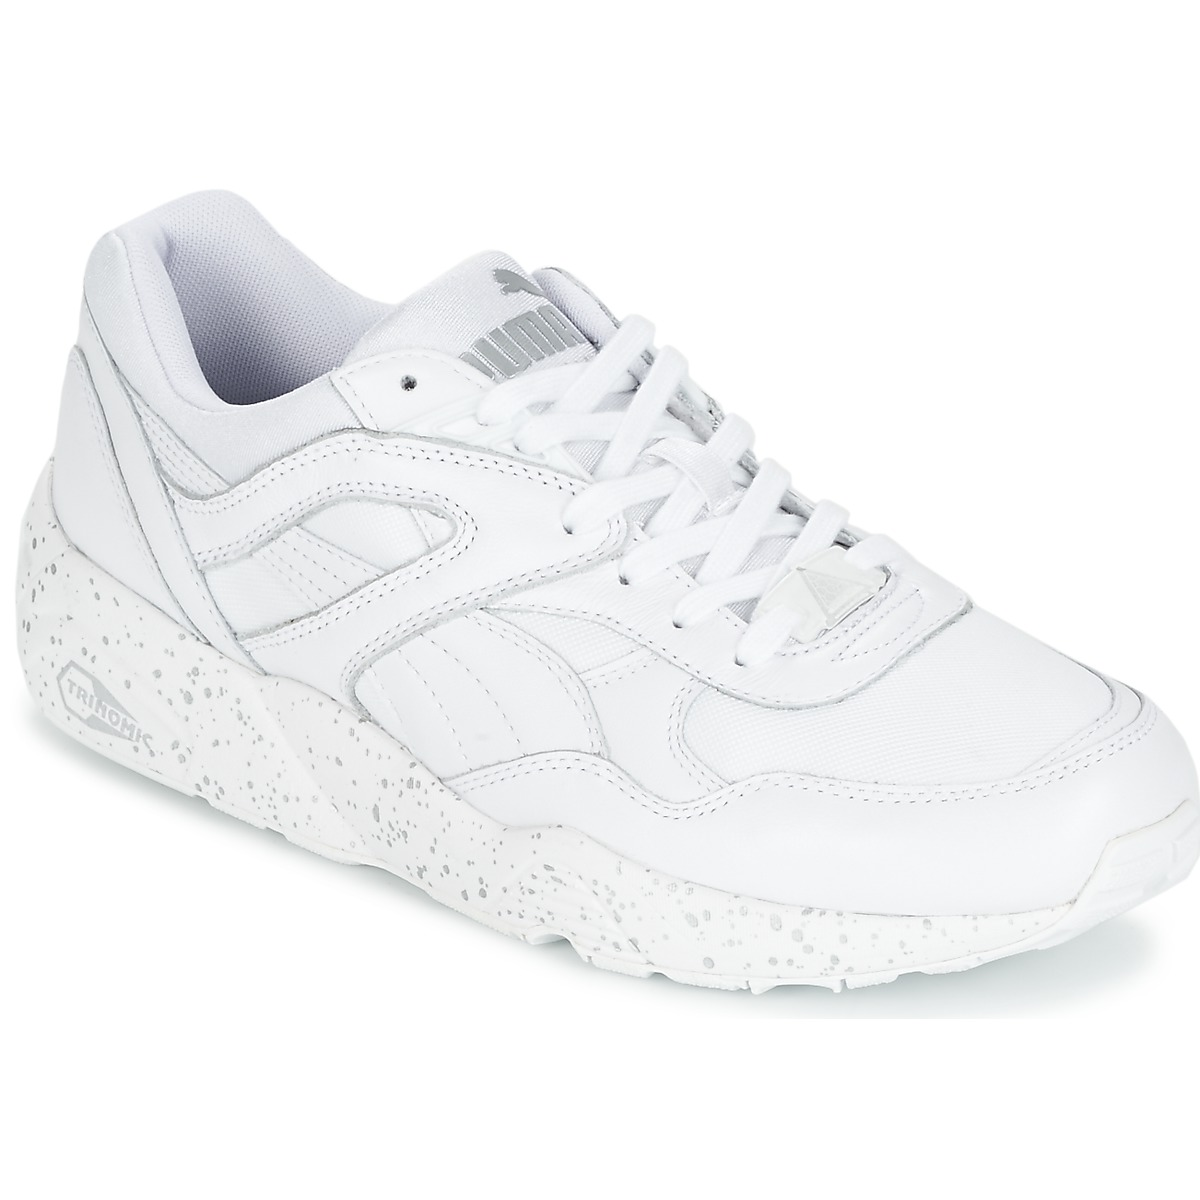 26385bad5b7f Puma R698 SPECKLE Blanc / Argent - Chaussures Baskets basses Homme 56,99 €